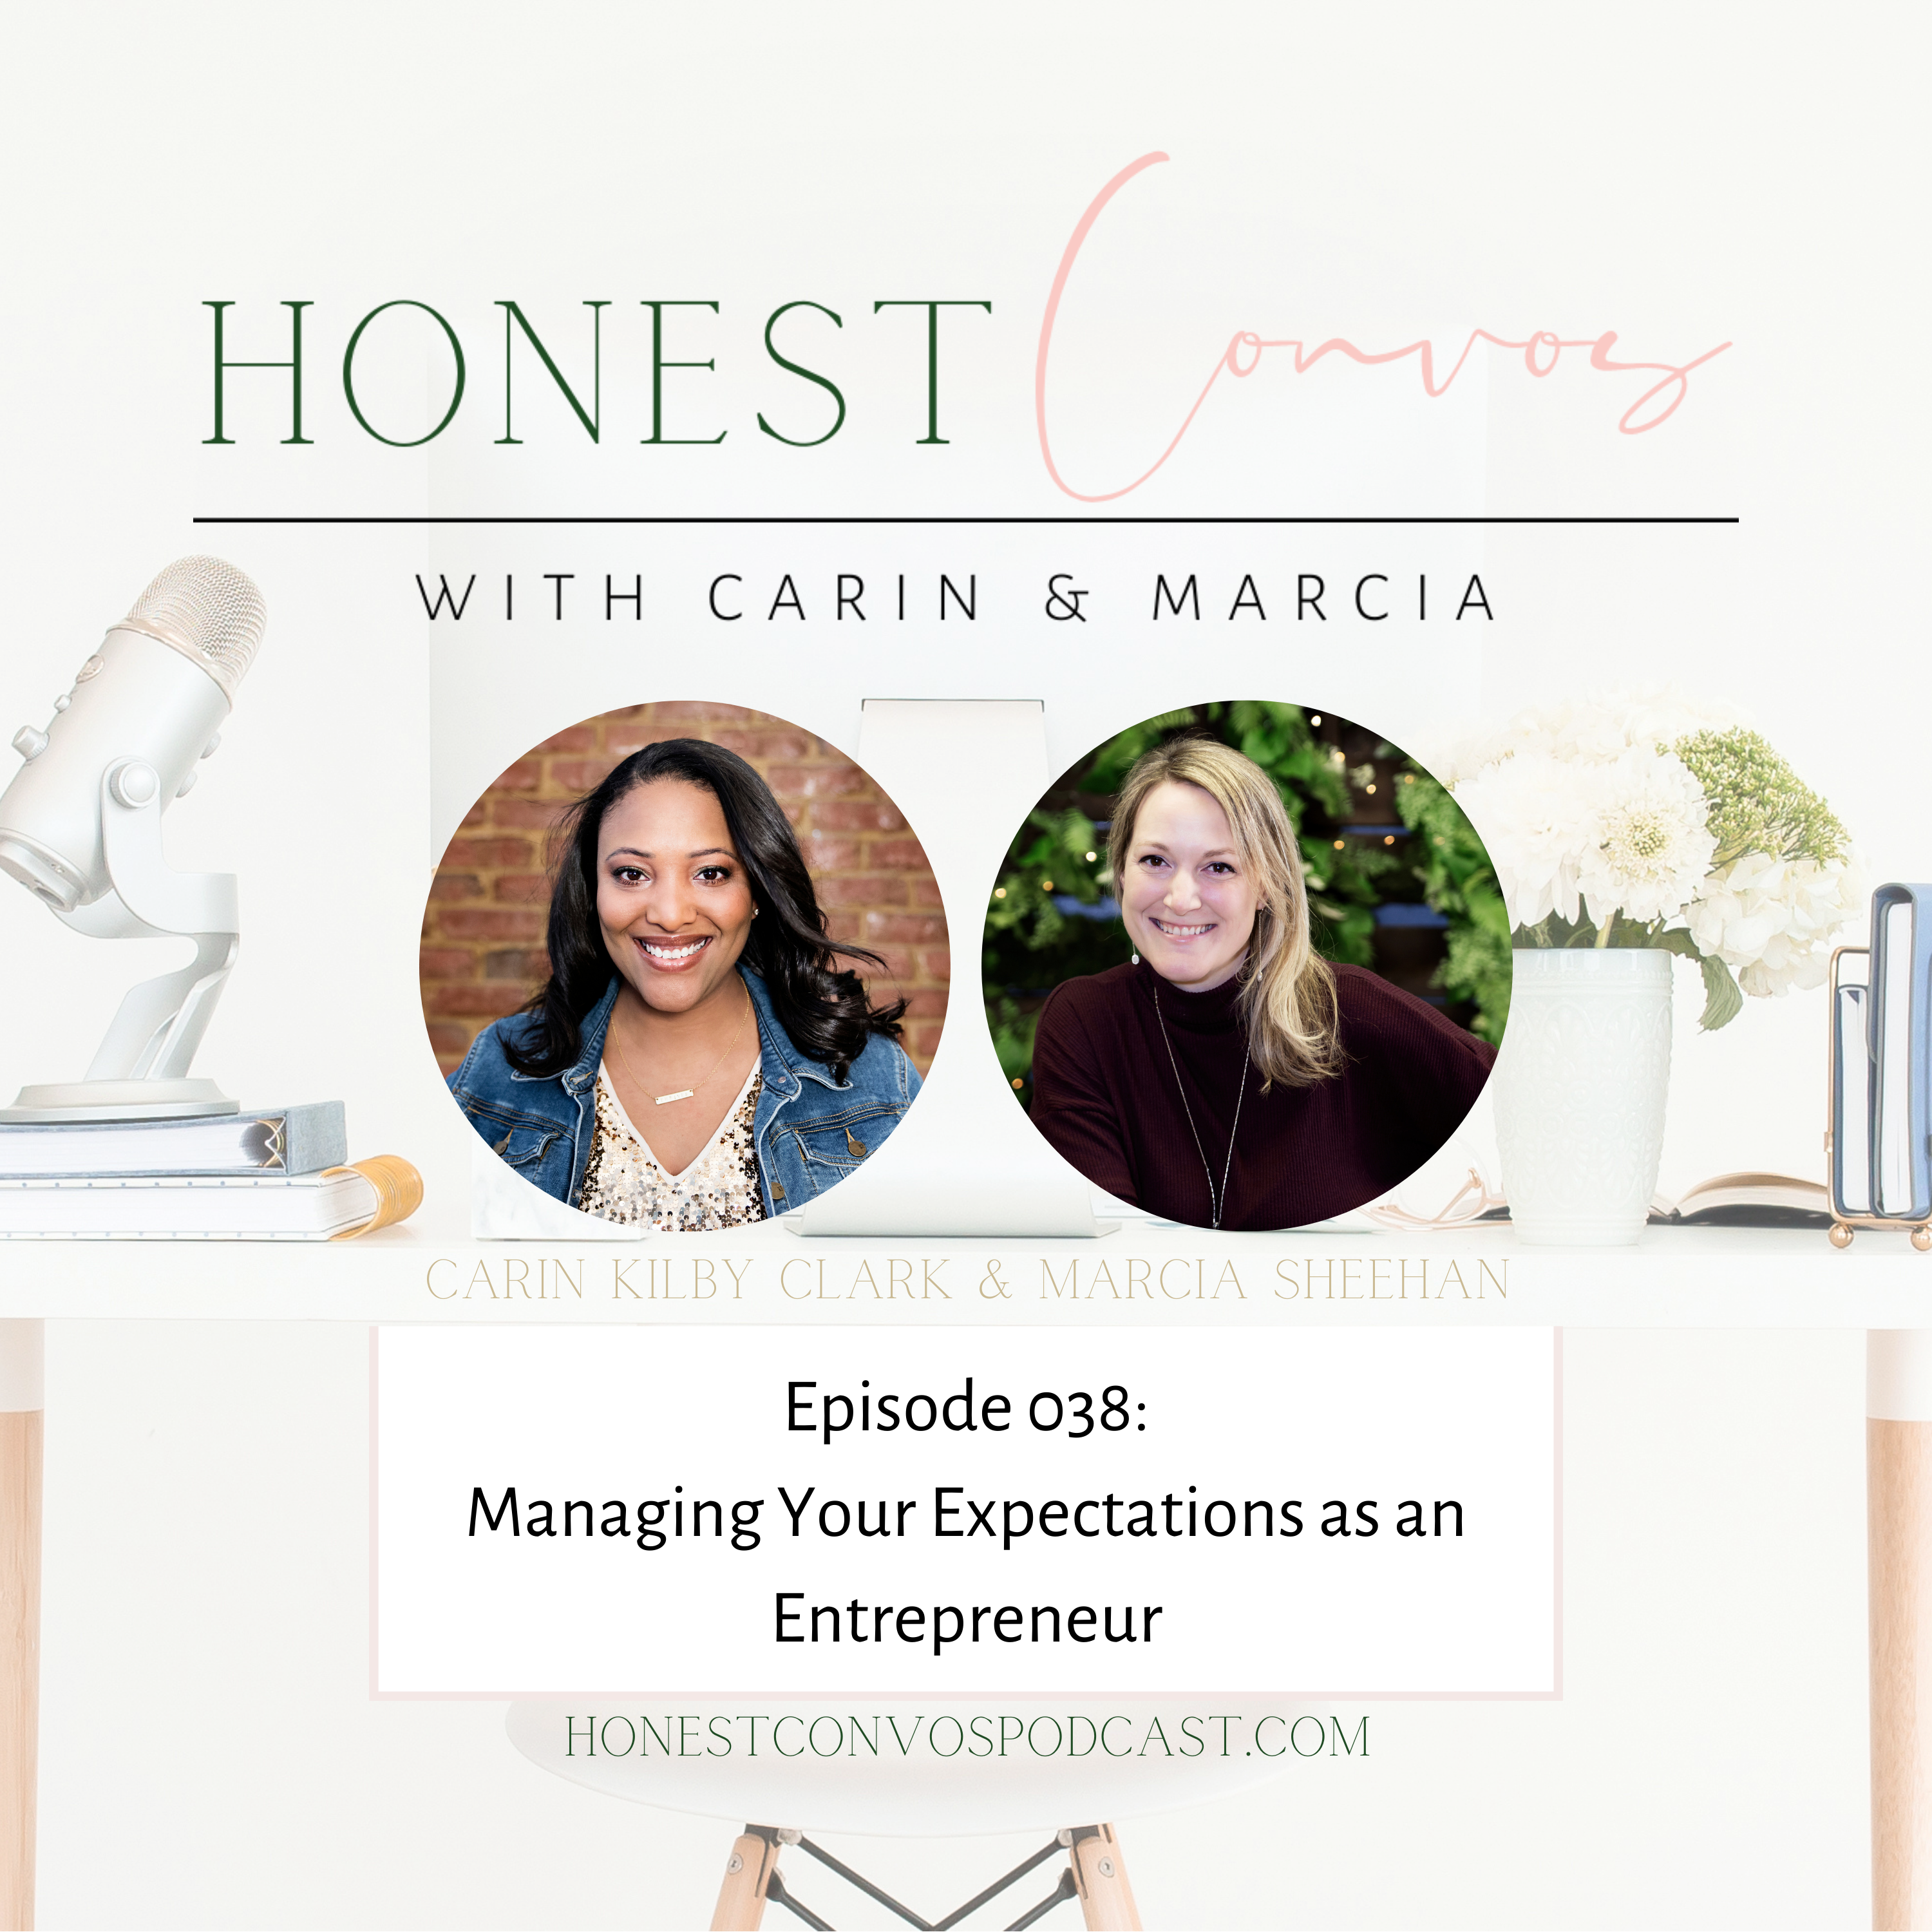 Managing Your Expectations as an Entrepreneur